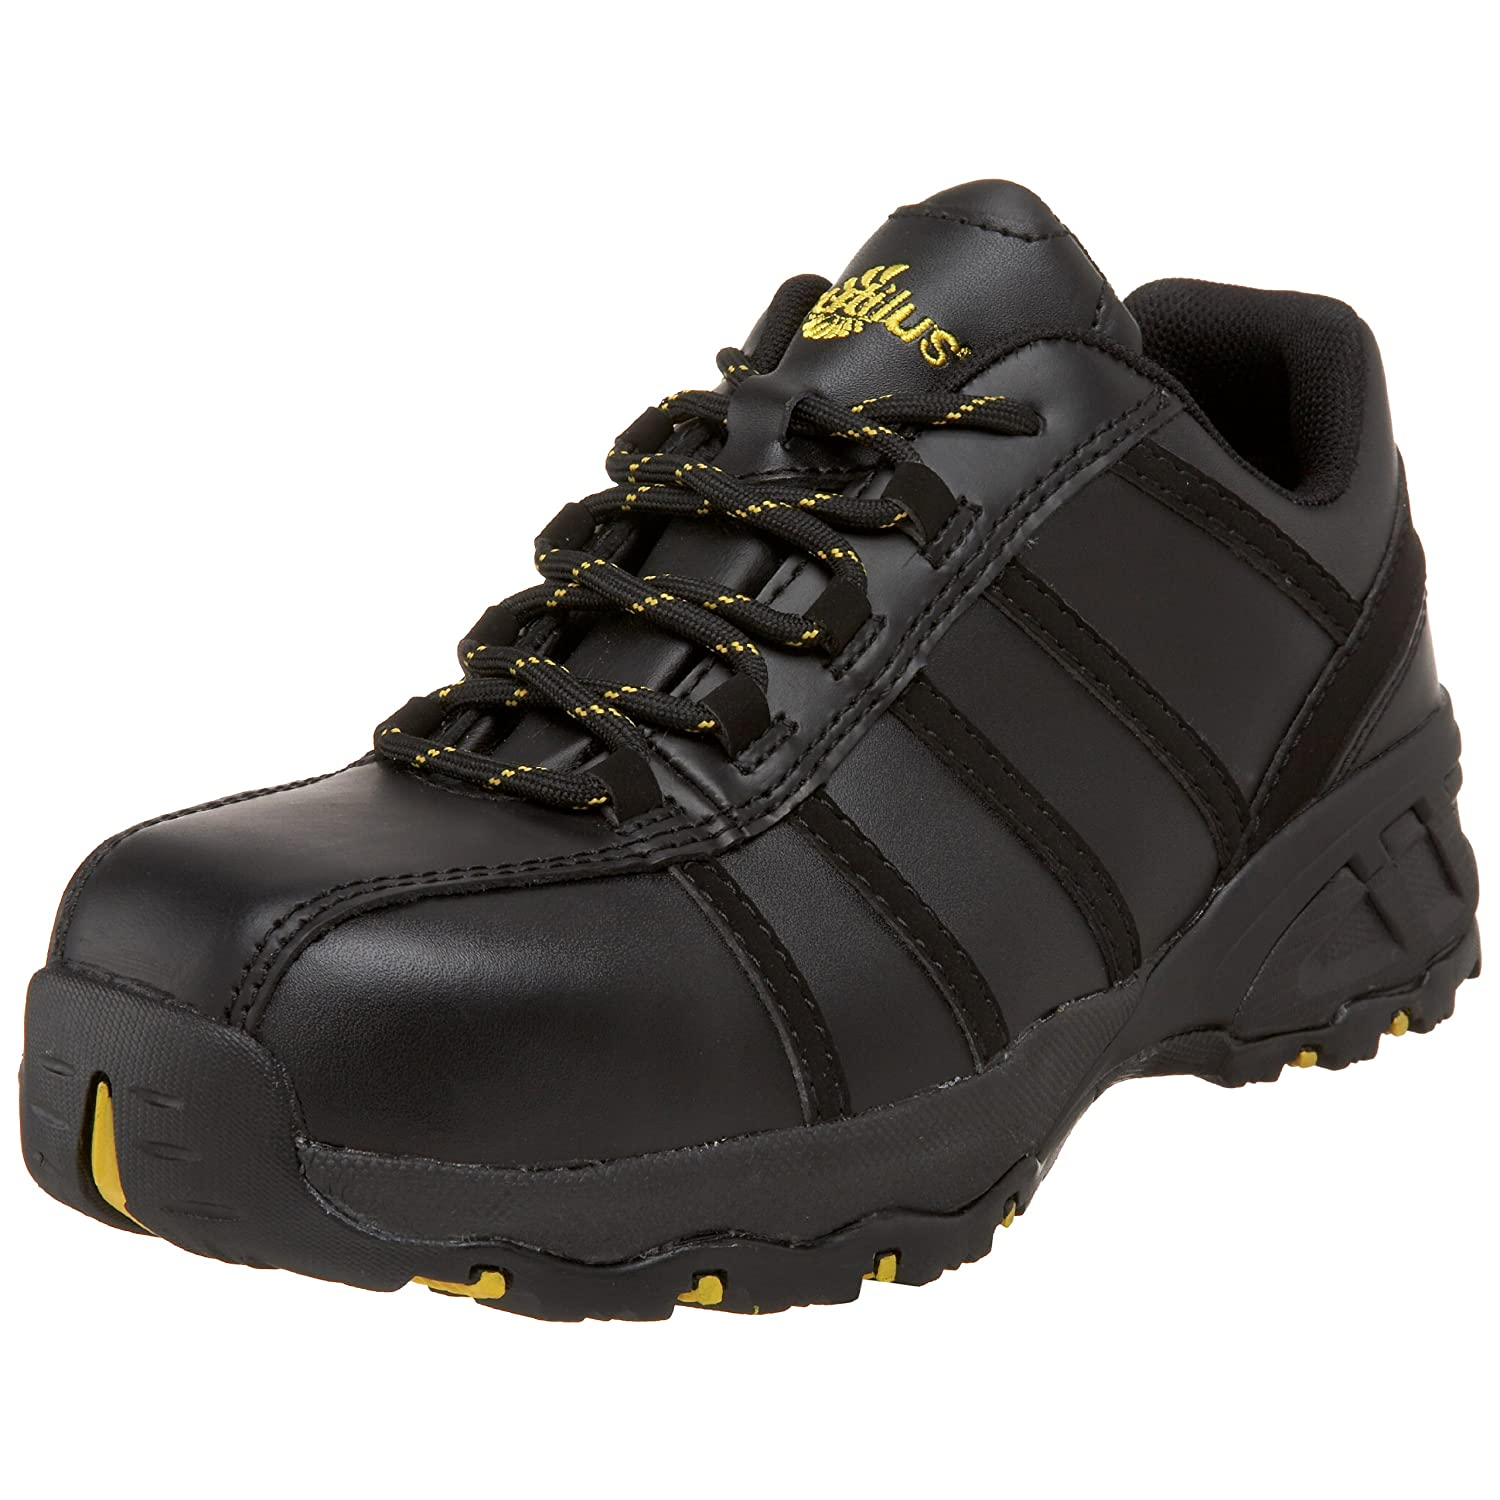 Nautilus Safety Footwear メンズ B002WC8L9G 9 2E US|ブラック ブラック 9 2E US